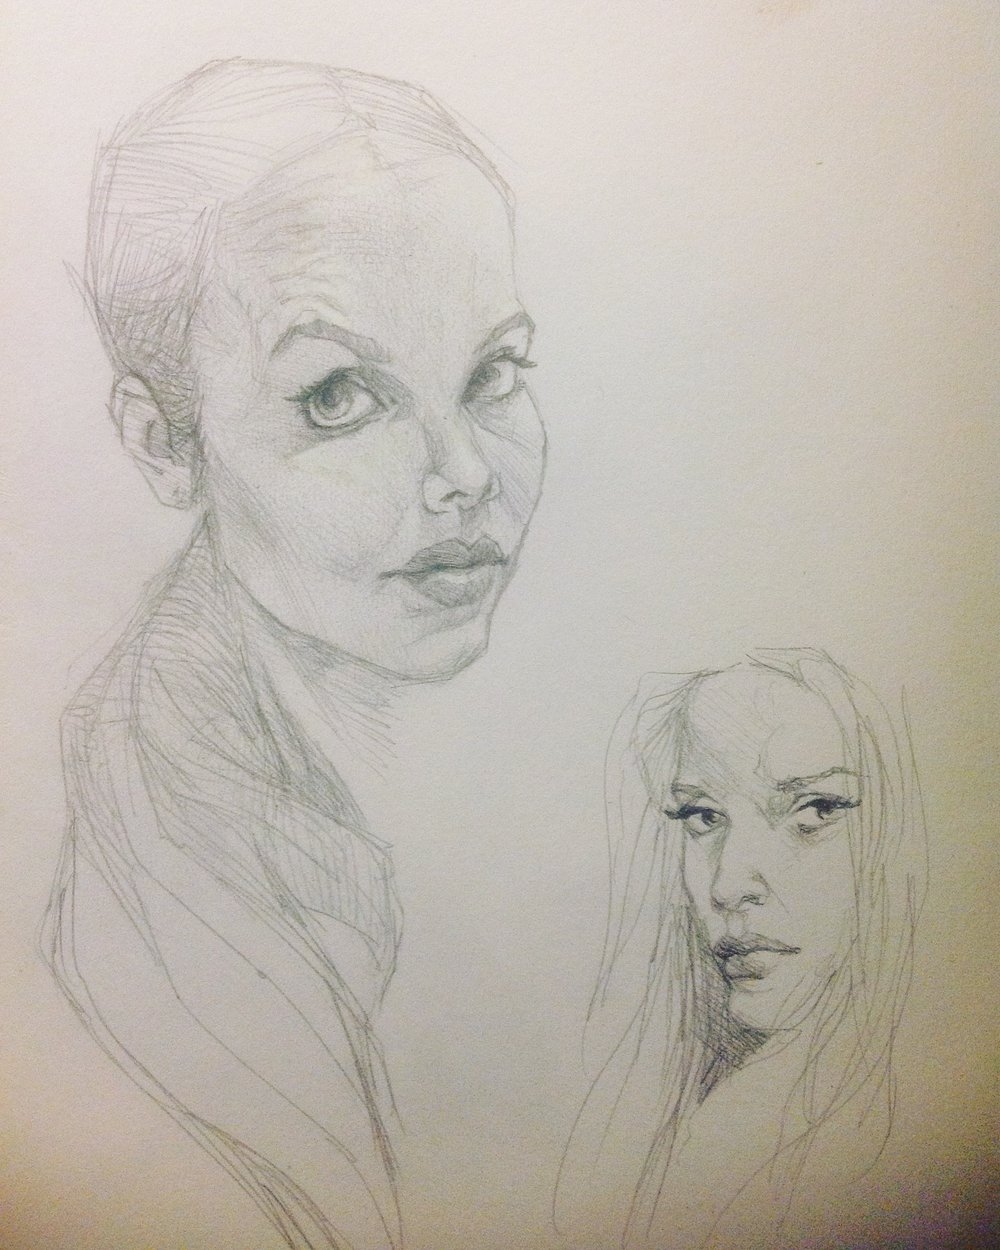 femaleheadstudysketch.JPG